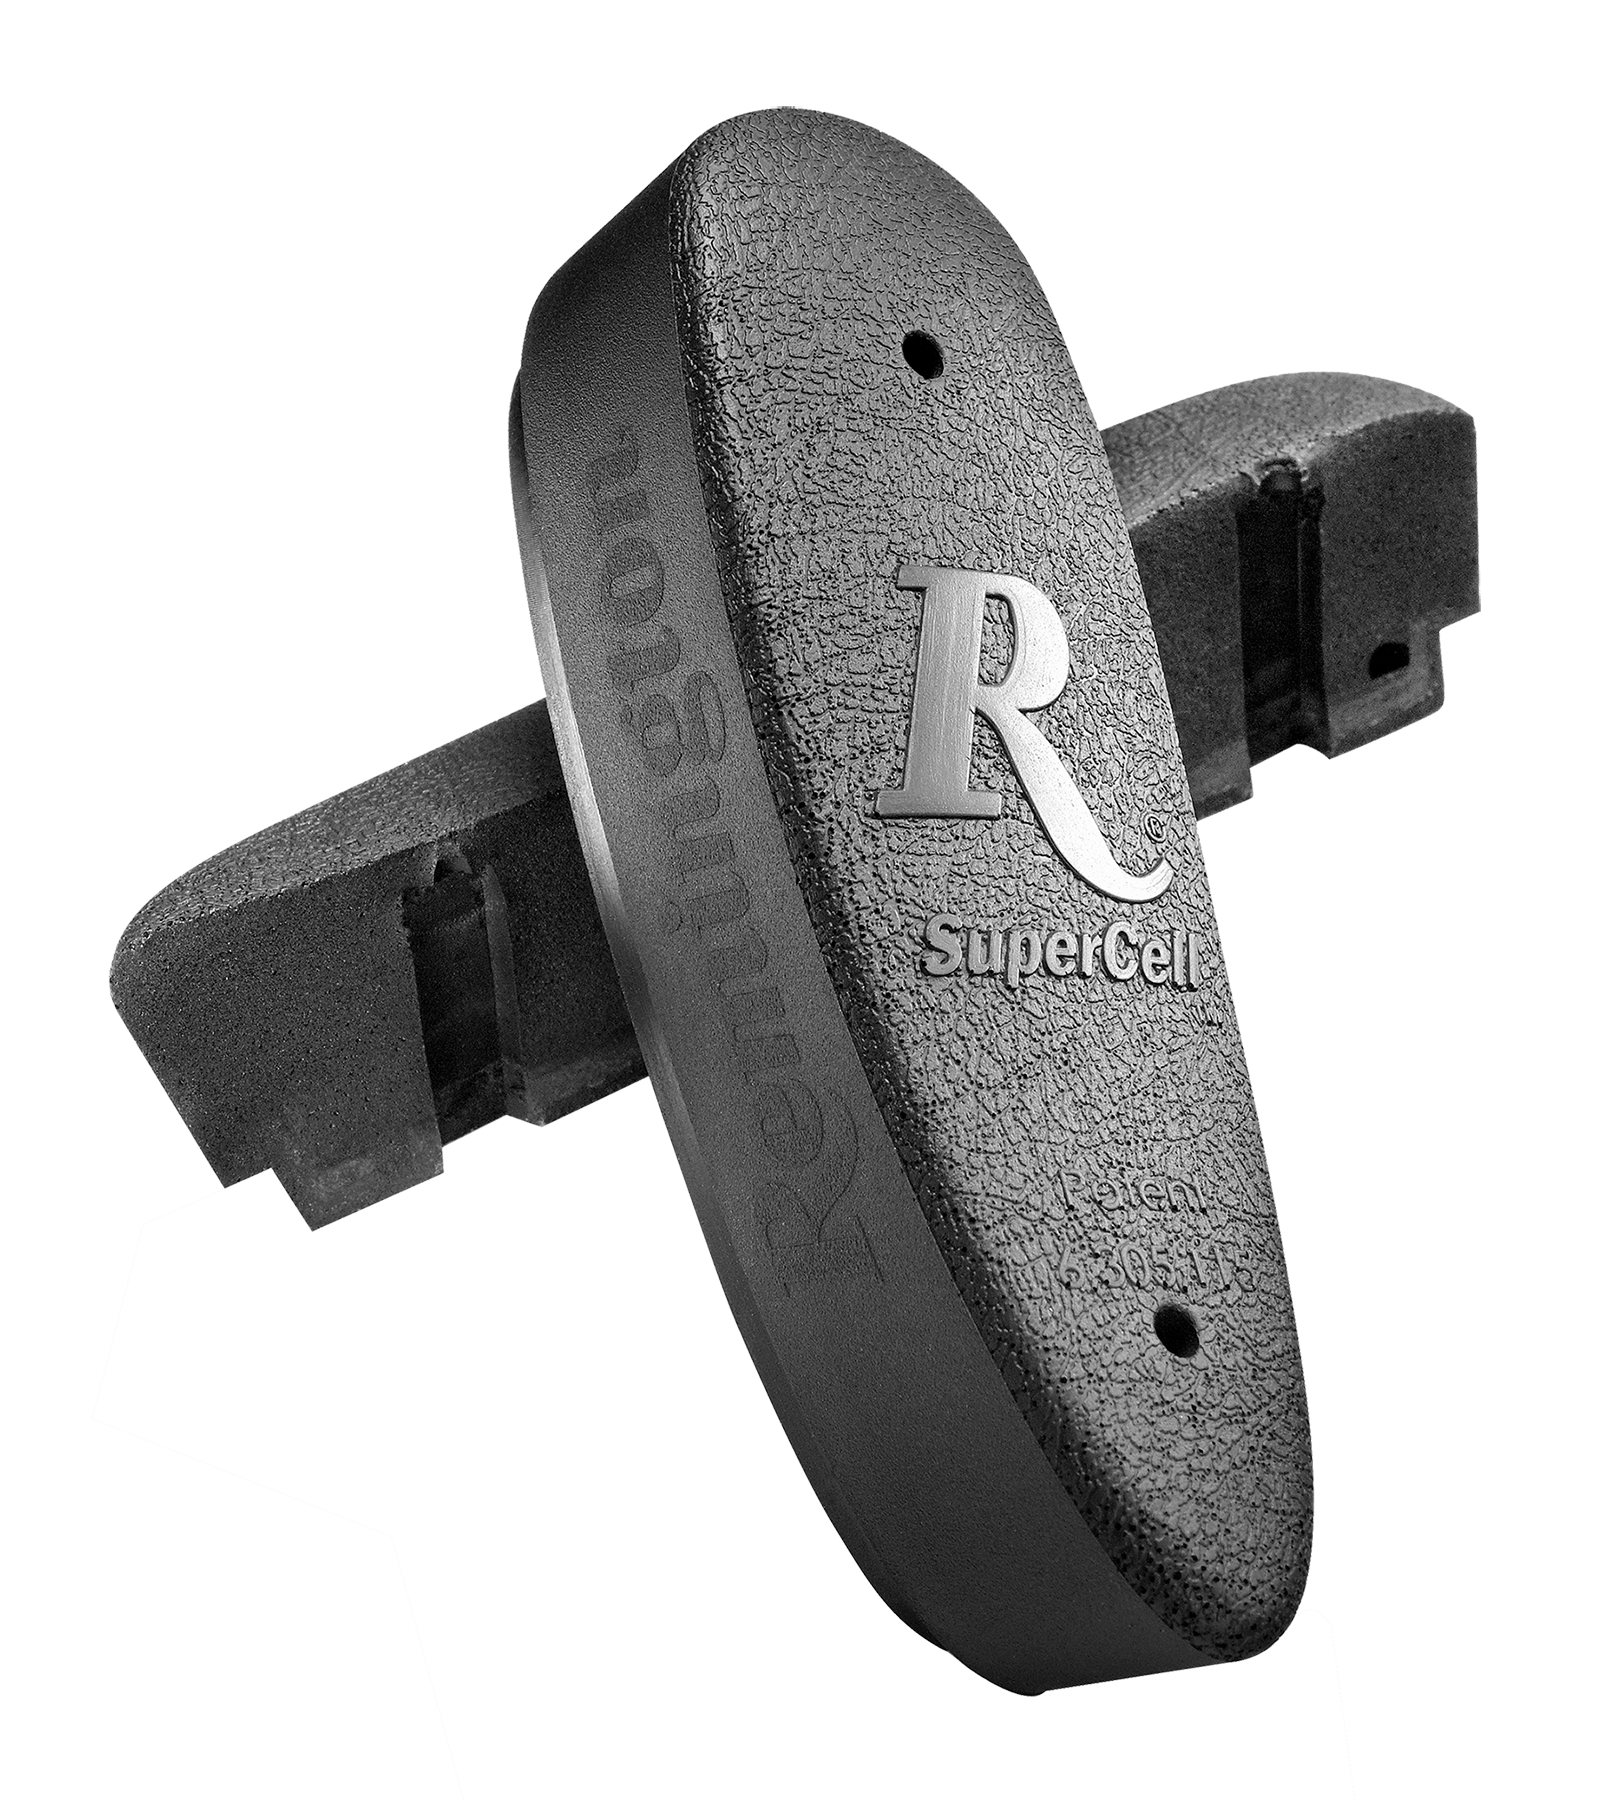 Remington 19483 Supercell Pad Recoil Pad Supercell Brown Wood